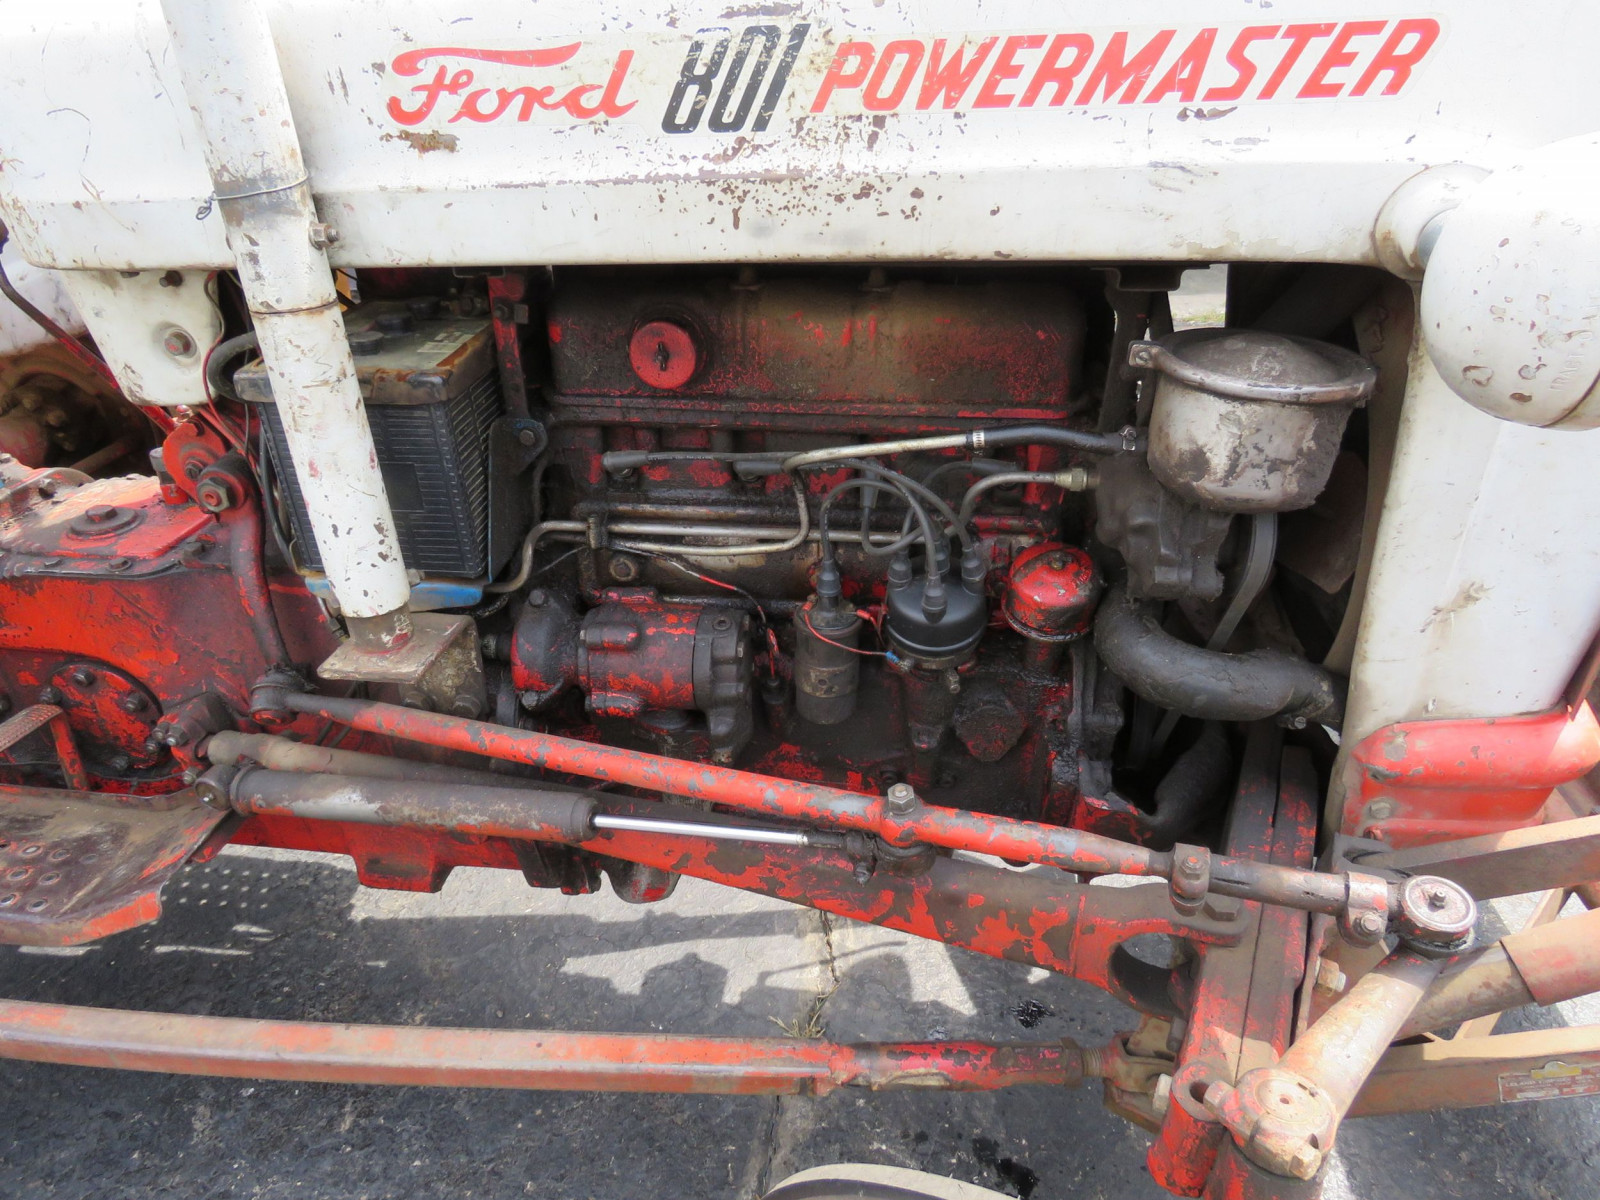 1958 Ford PowerMaster 801 - Image 4